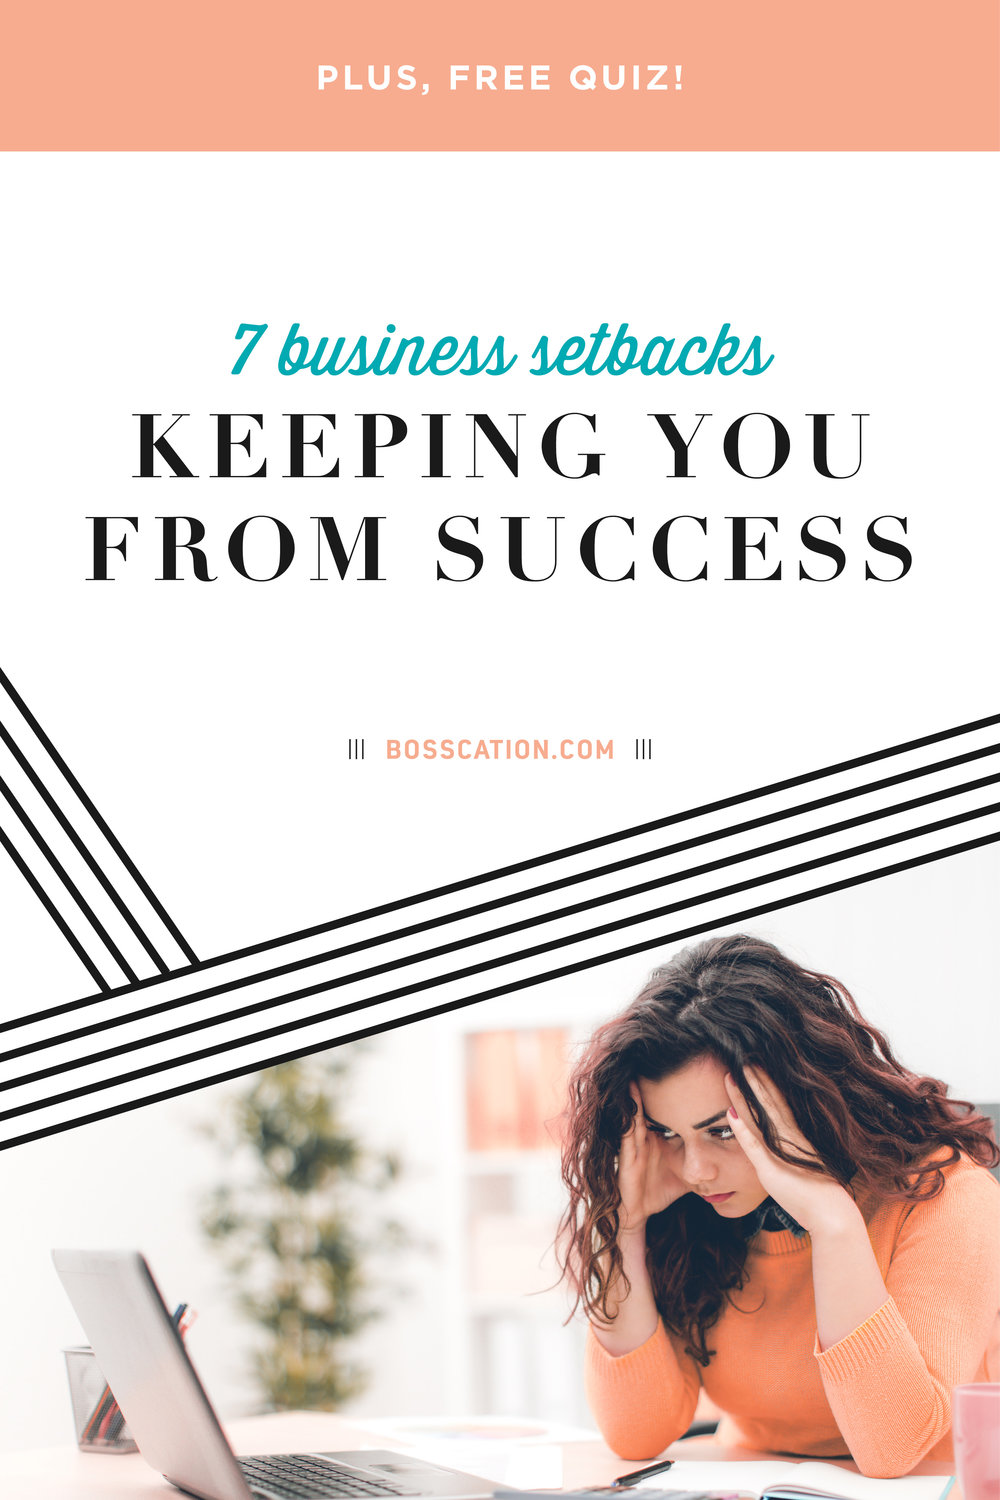 "Do you have great ideas, but never implement them? Do you find yourself ""stuck"" and aren't sure how to move forward? Here are 7 business setbacks that are keeping you from success. PLUS, take our free quiz to find out what YOUR biggest setback is, so you can learn how to break free and strive for success! Read more at www.Bosscation.com  Bosscation is a business retreat in a box for entrepreneurs to escape from their daily hustle to strategically plan for their business. Our secret sauce is in the strategic planning guides for launching a new offer, planning out your content, or finding your path to profit."